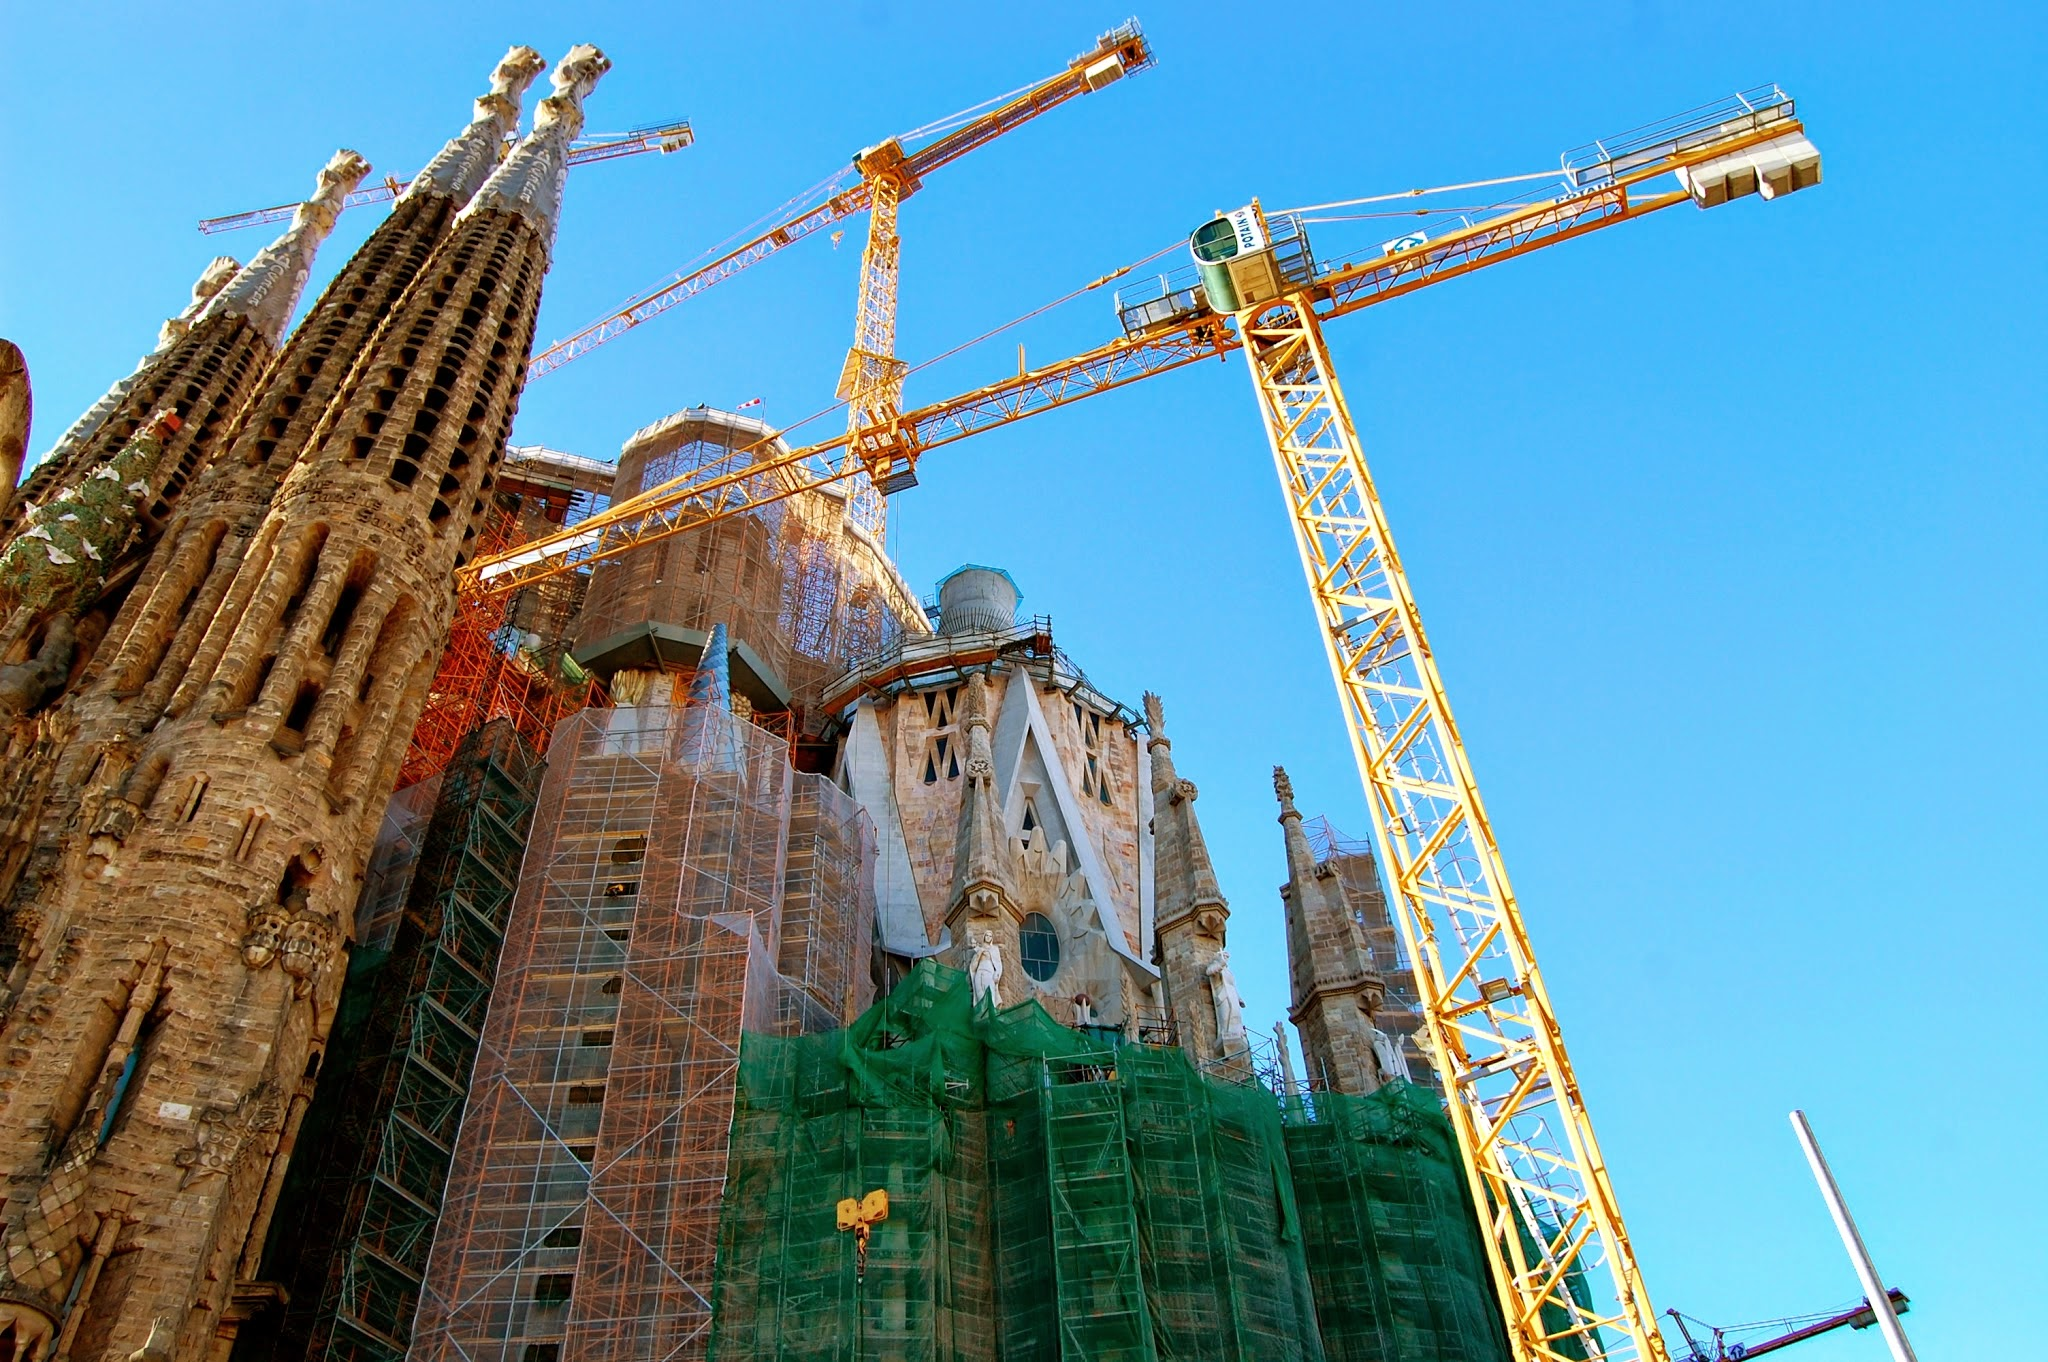 Cranes rising above the apse of the Sagrada Familia